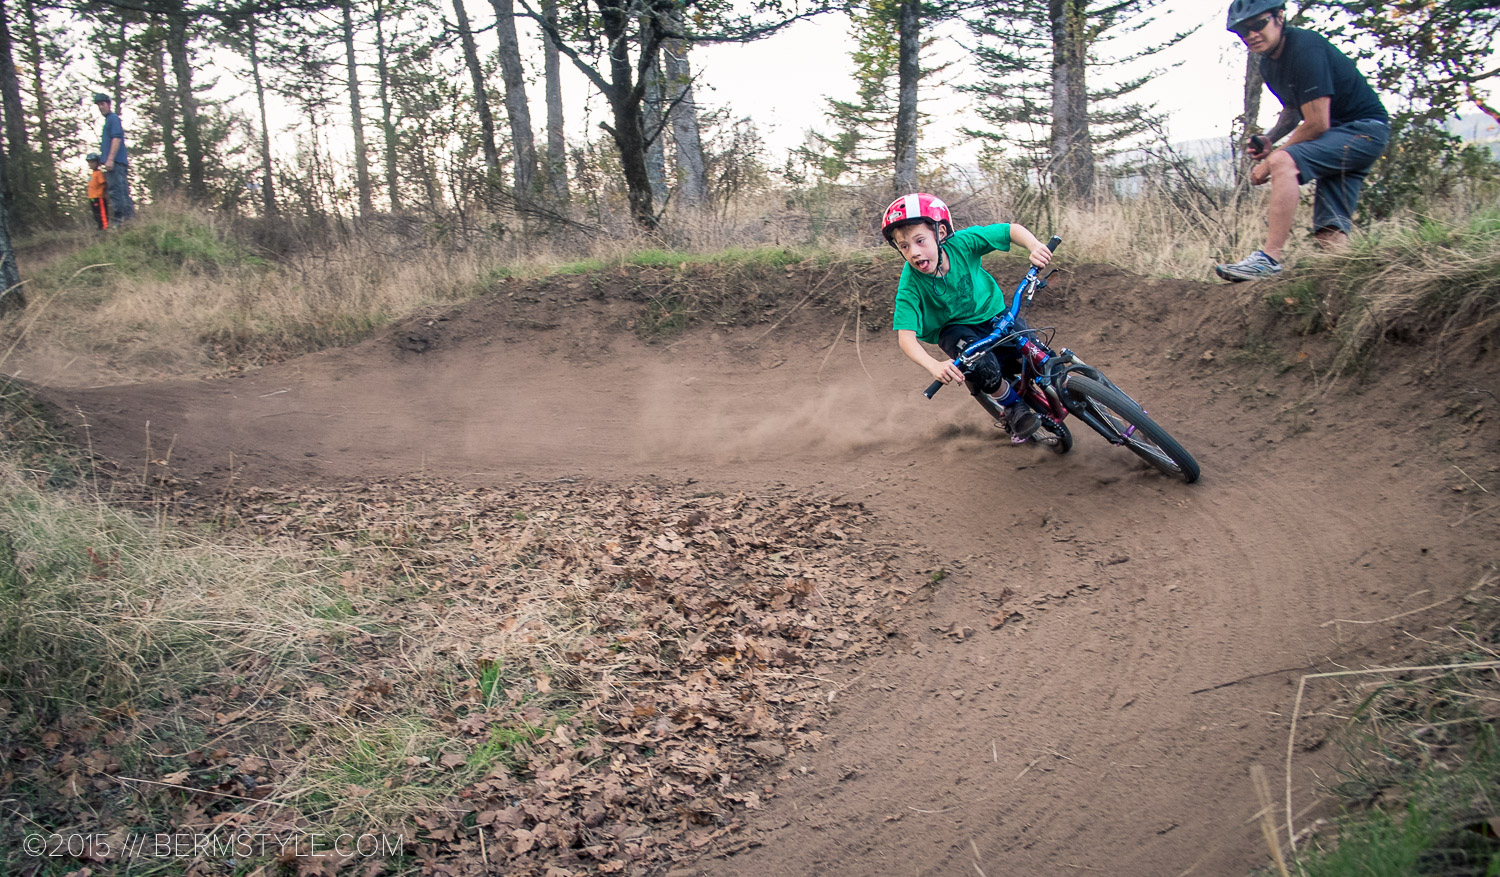 Racks By The Tracks >> Take a Kid Mountain Biking Day – EasyCLIMB Trail, Cascade Locks